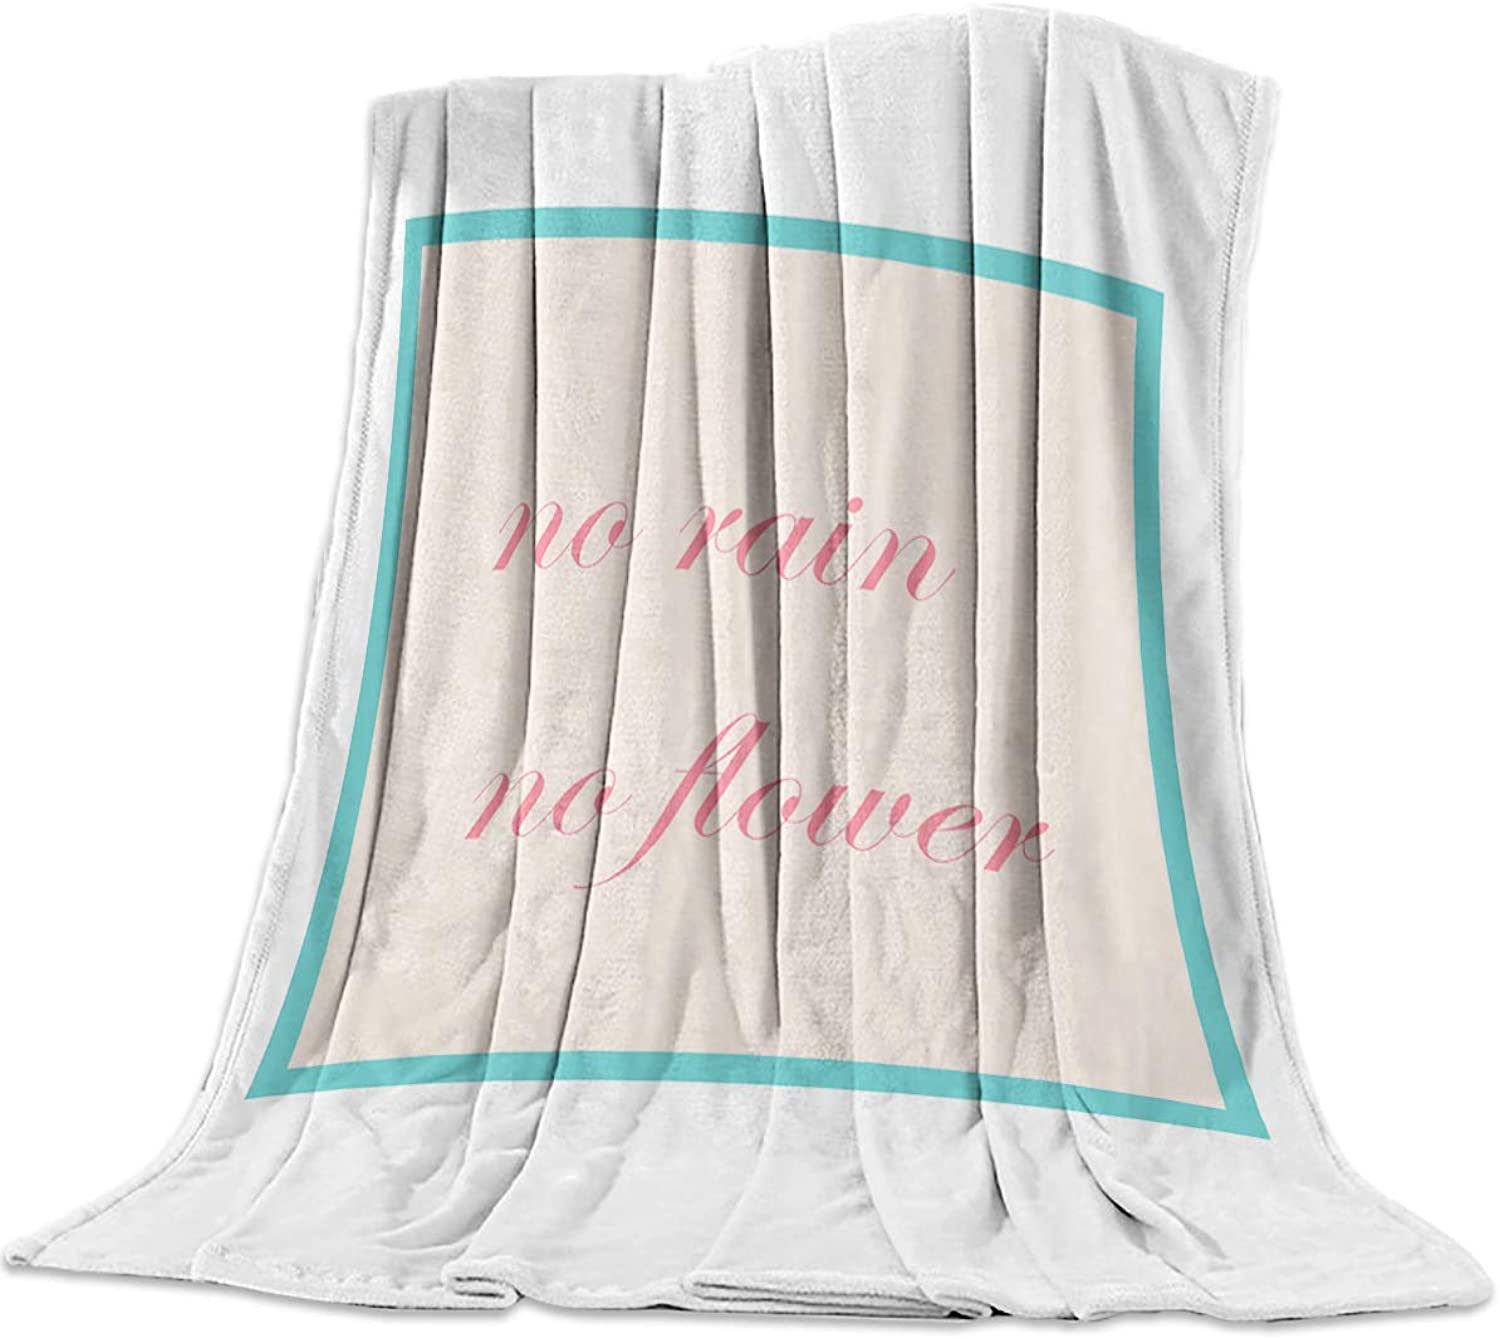 T&H Home Fuzzy Weighted Blanket White Pink Saying  No Rain No Flower Warm Flannel Throw Blanket for Baby Girls Boys Adult Home Office Sofa Chair Cars 50 x60